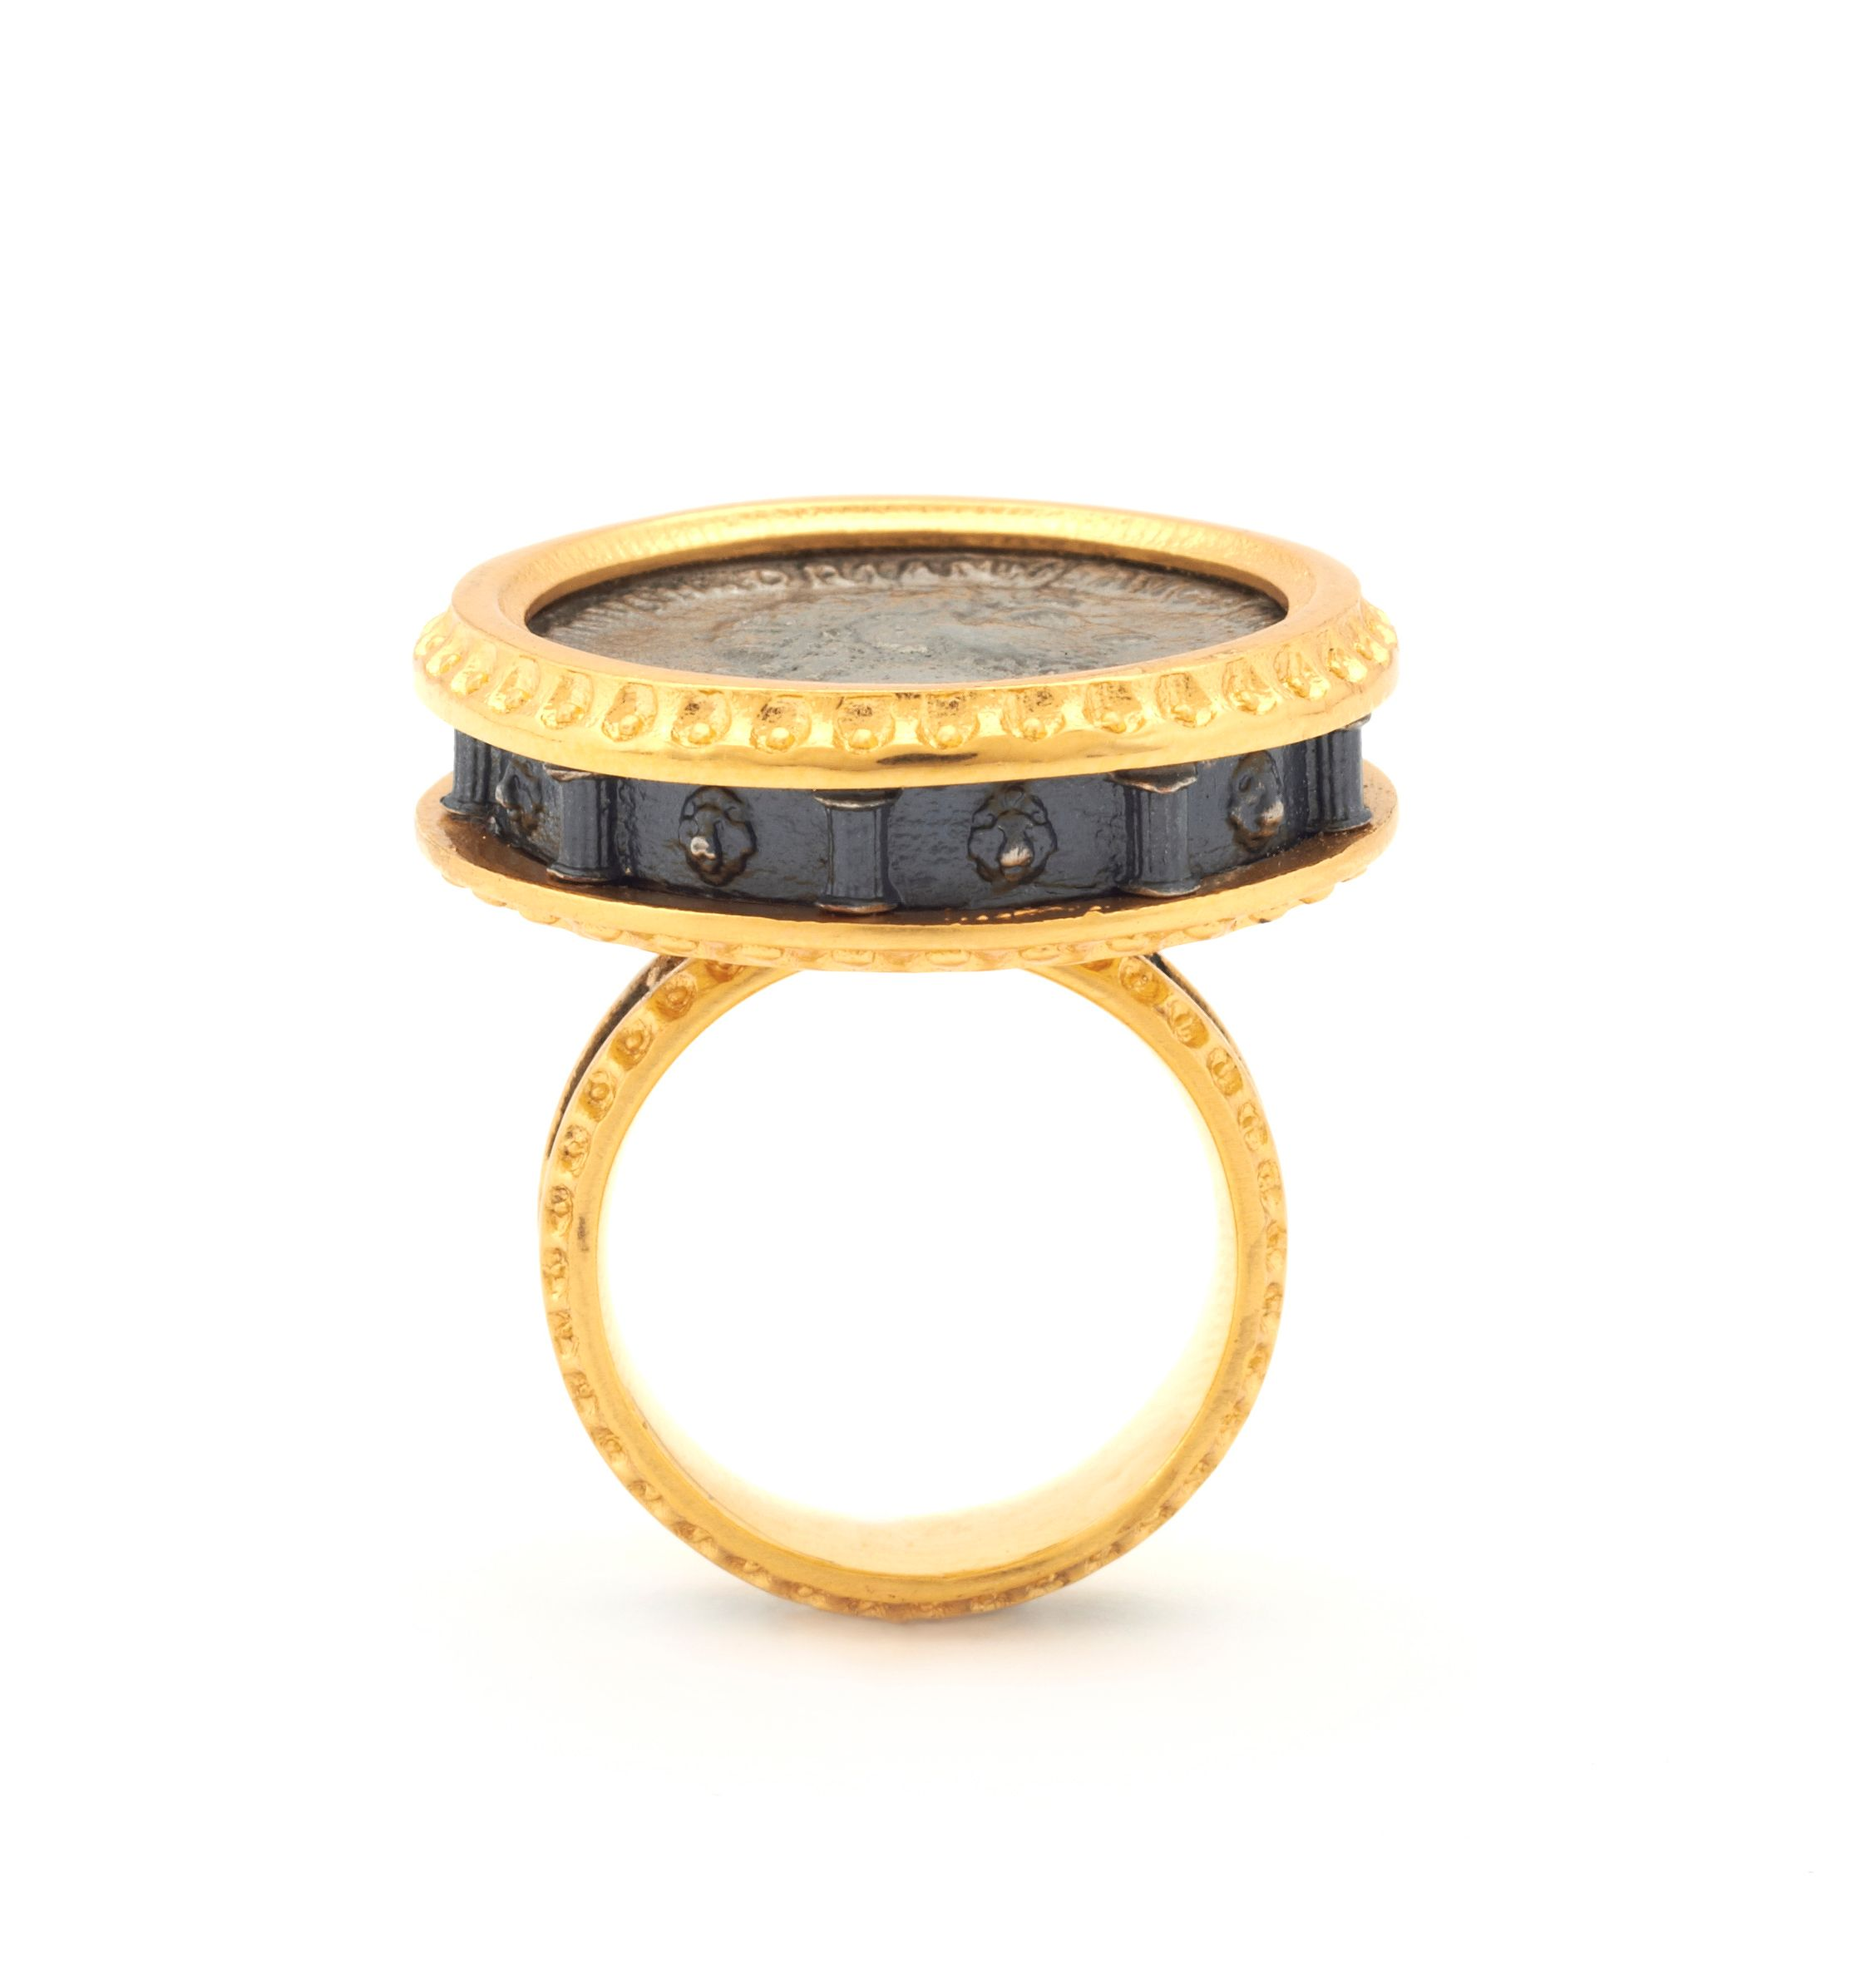 Emperor coin statement ring